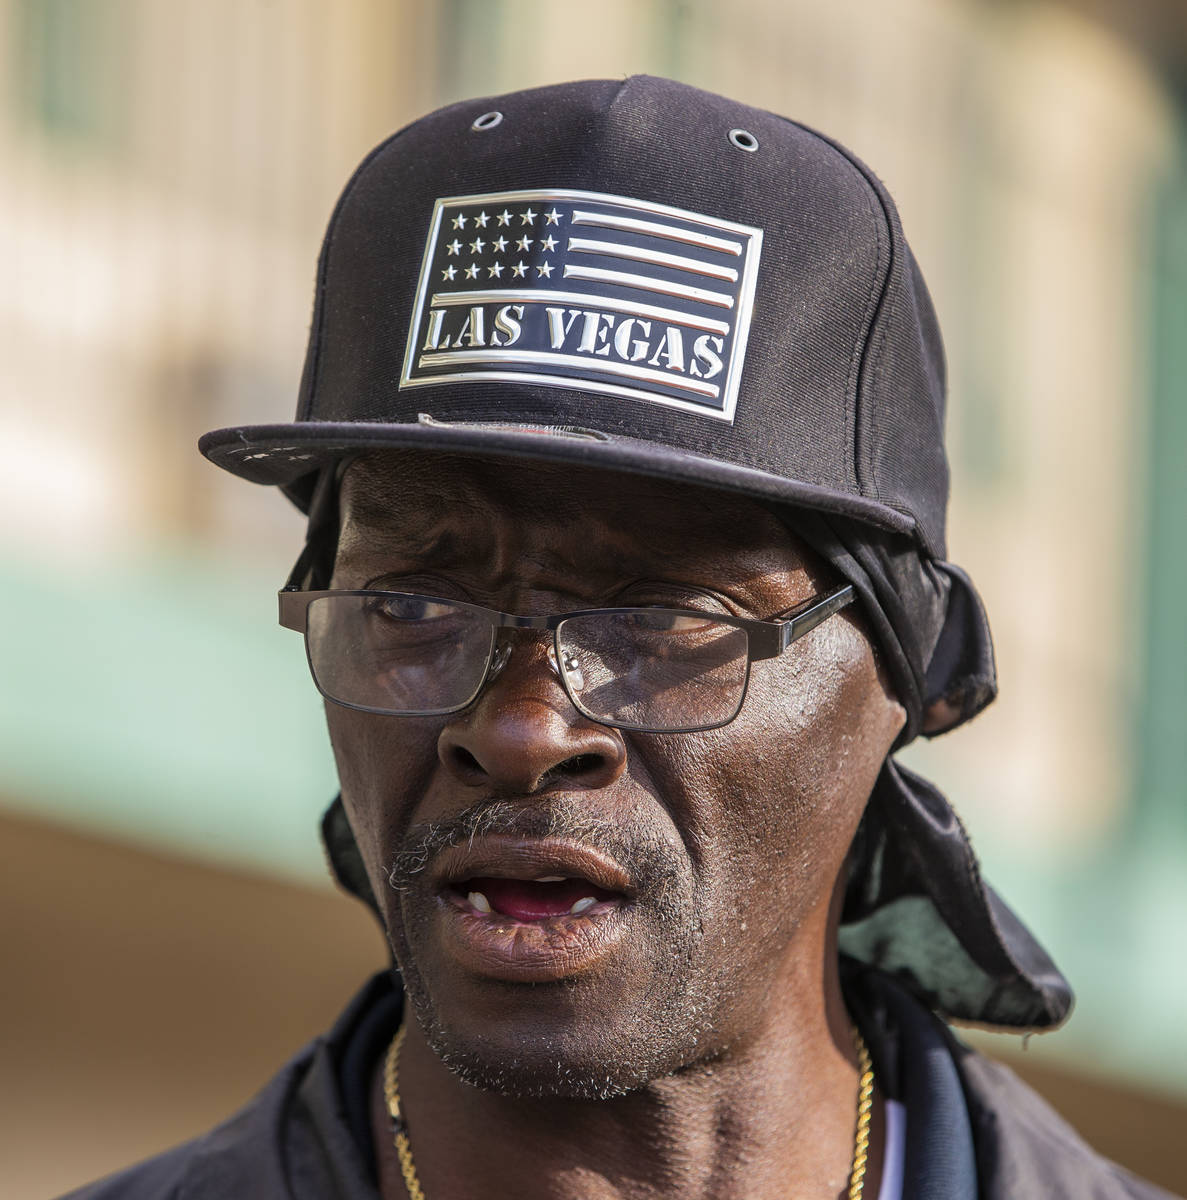 Johnny Wingo is concerned about the lack of resources and kindness for the homeless especially ...